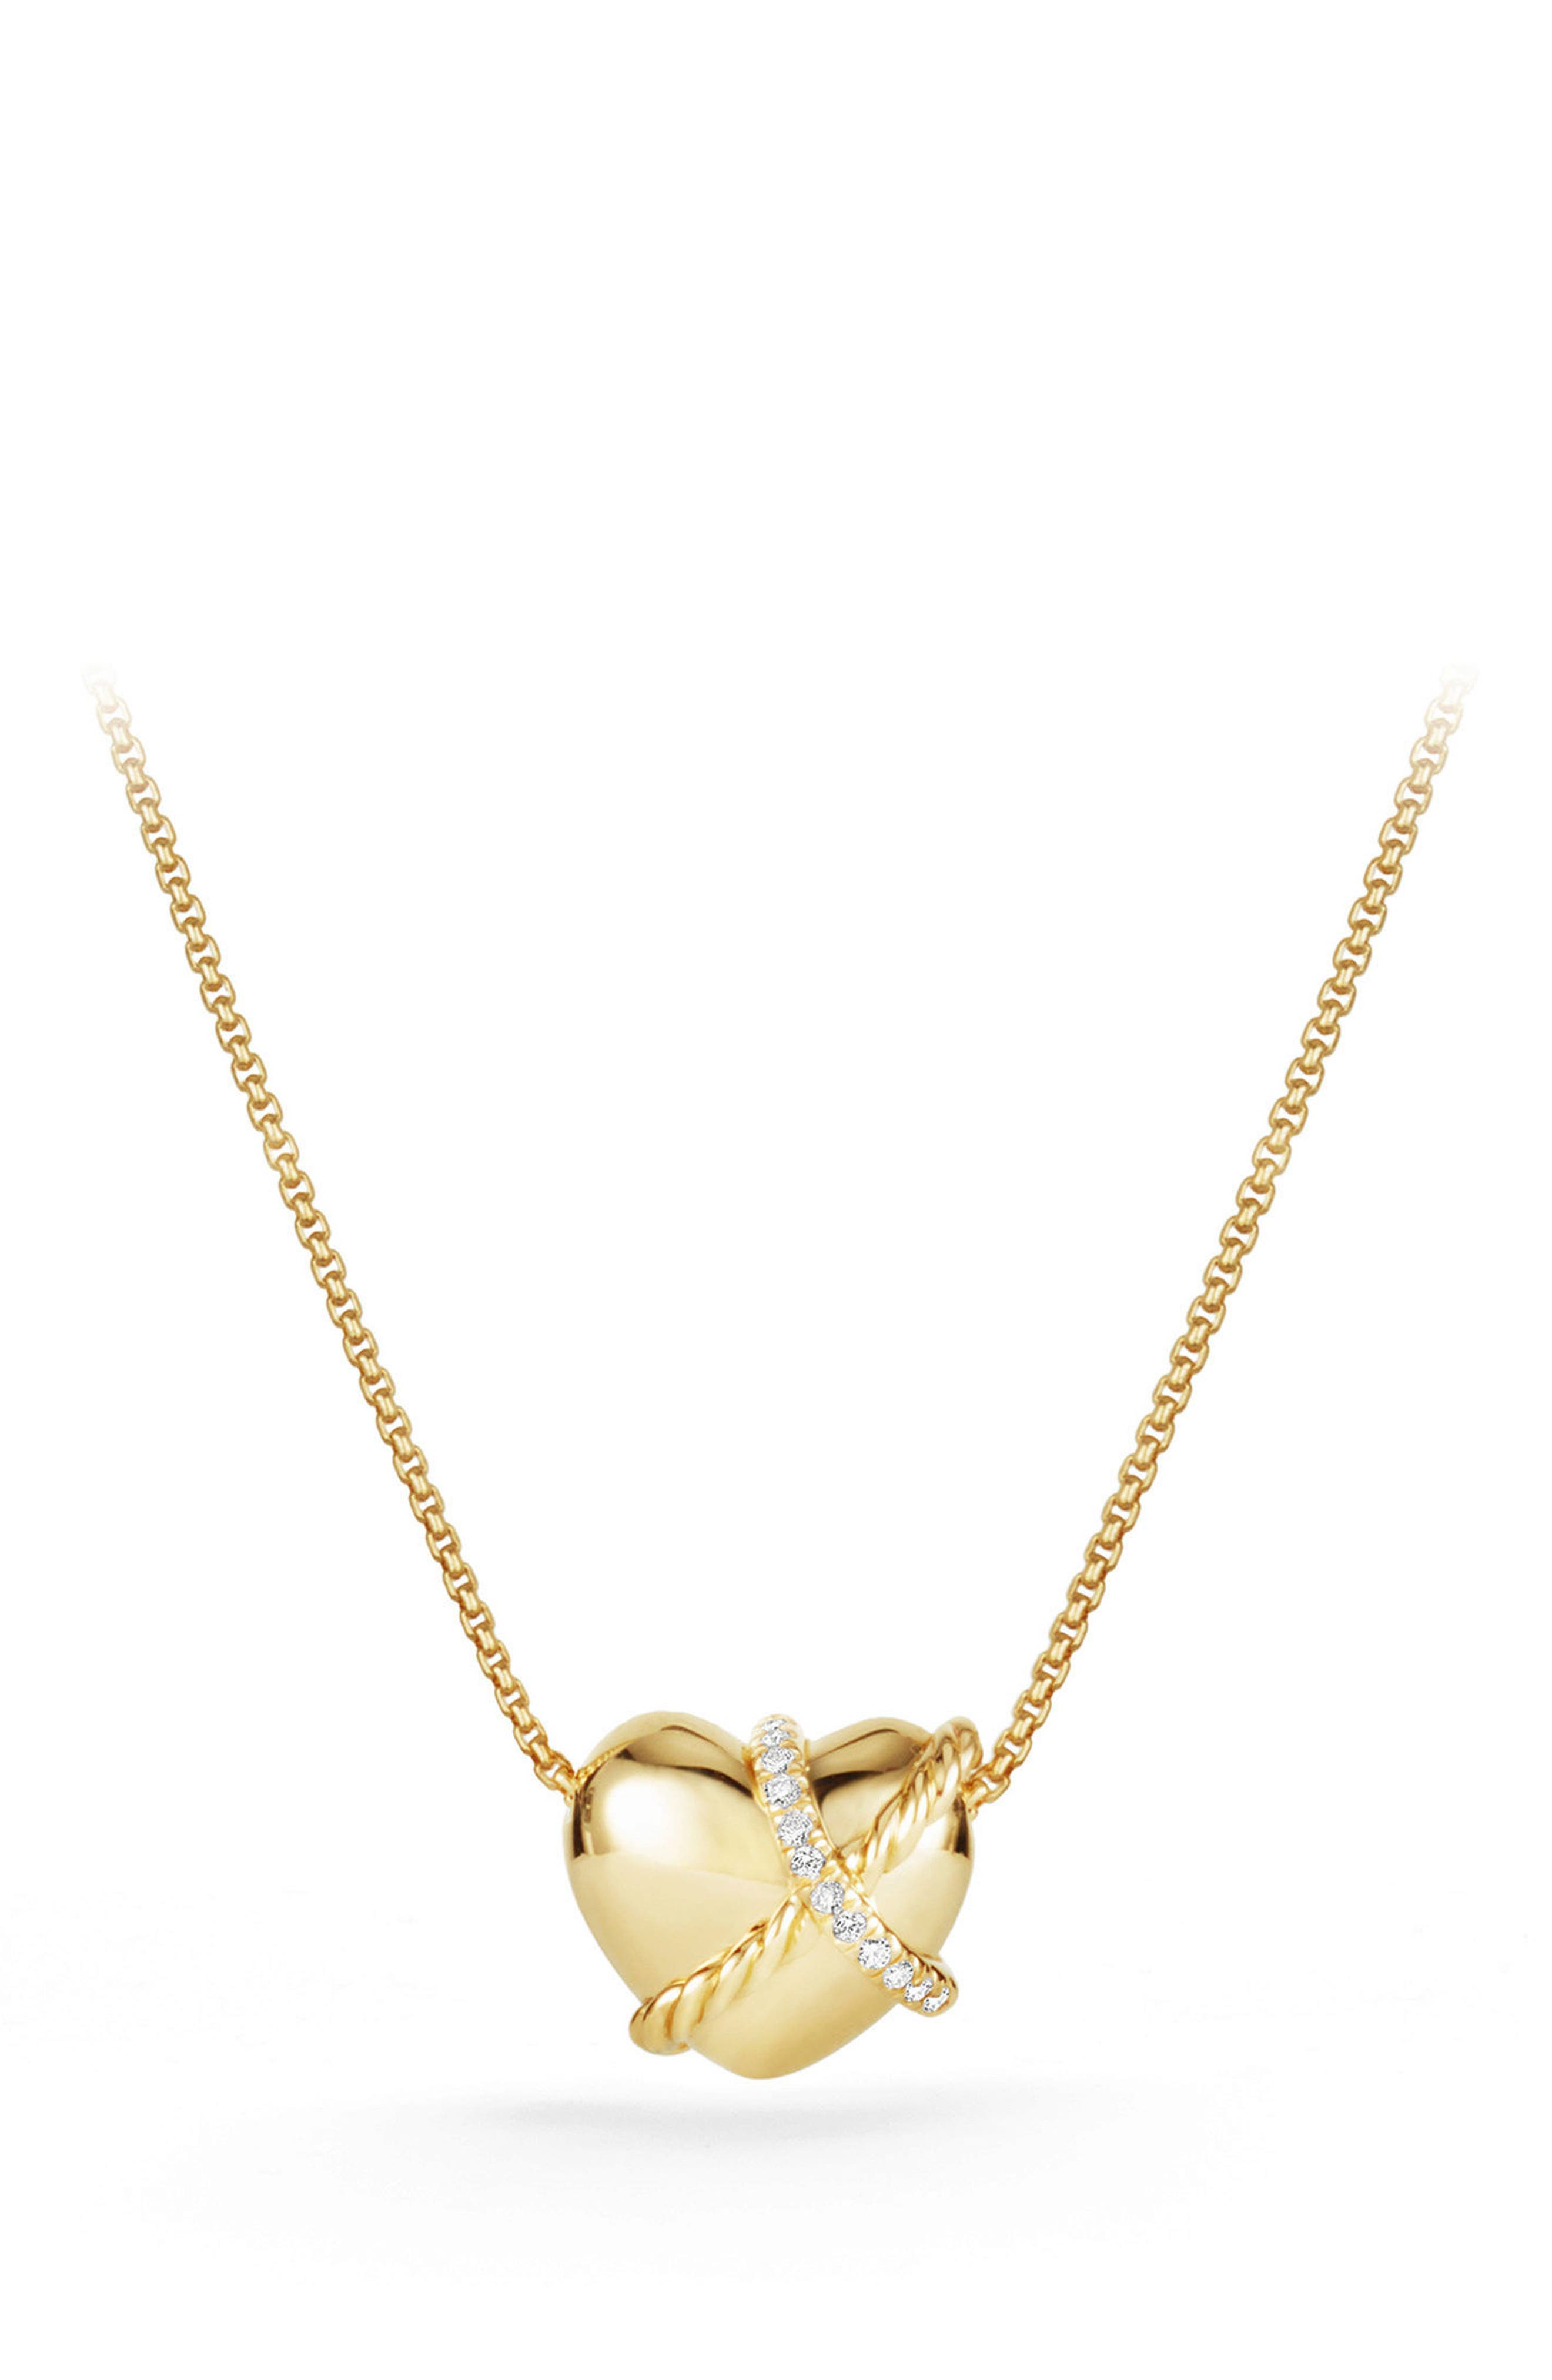 Heart Pendant Necklace in 18K Gold with Diamonds,                         Main,                         color, Yellow Gold/ Diamond